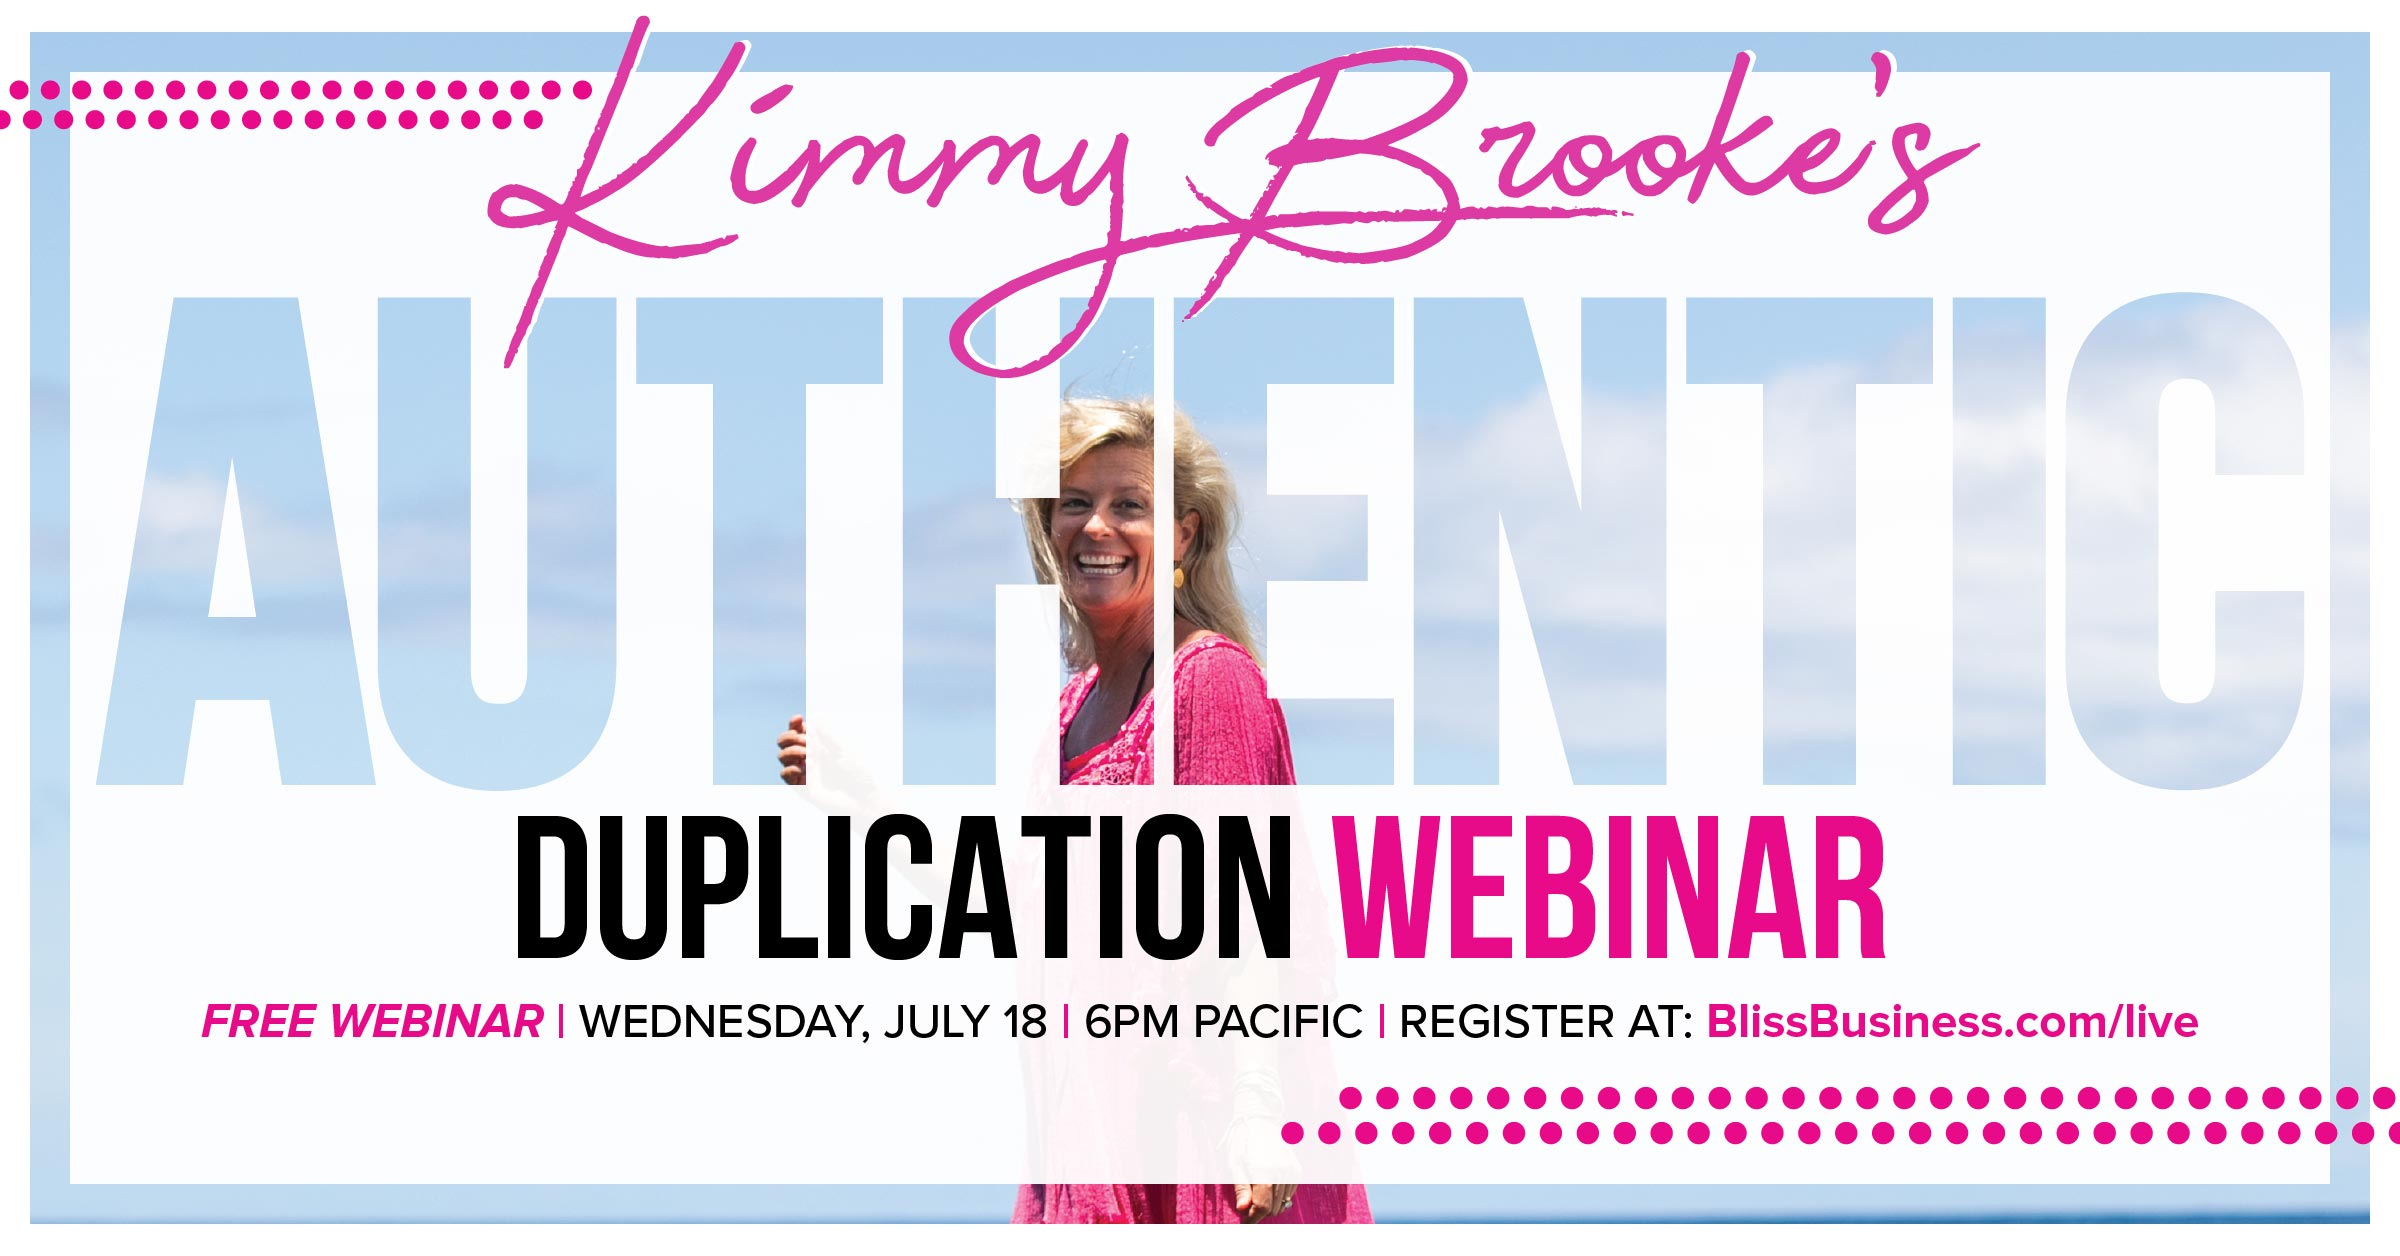 Kimmy Brooke Authentic Duplication Network Marketing Bliss Business